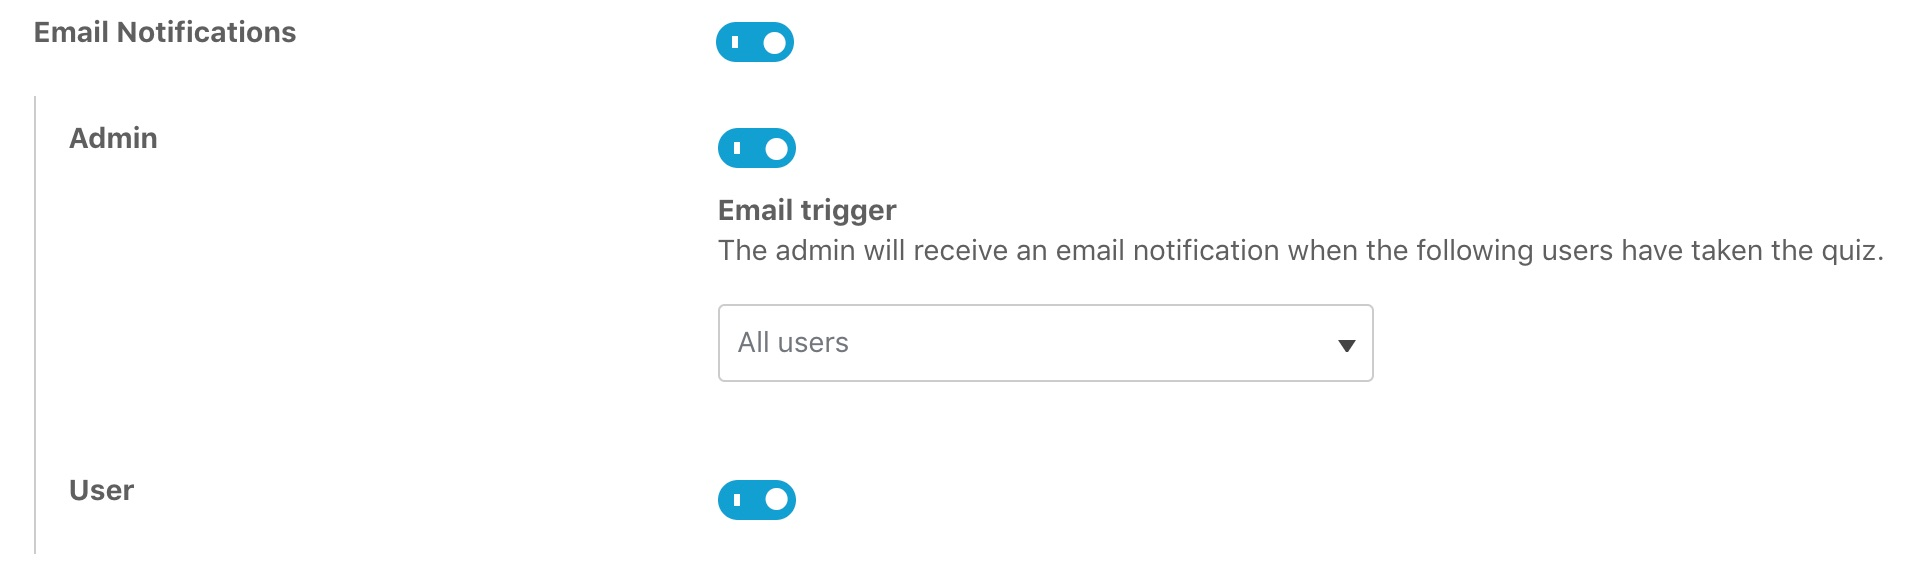 How to enable quiz email notifications in admin